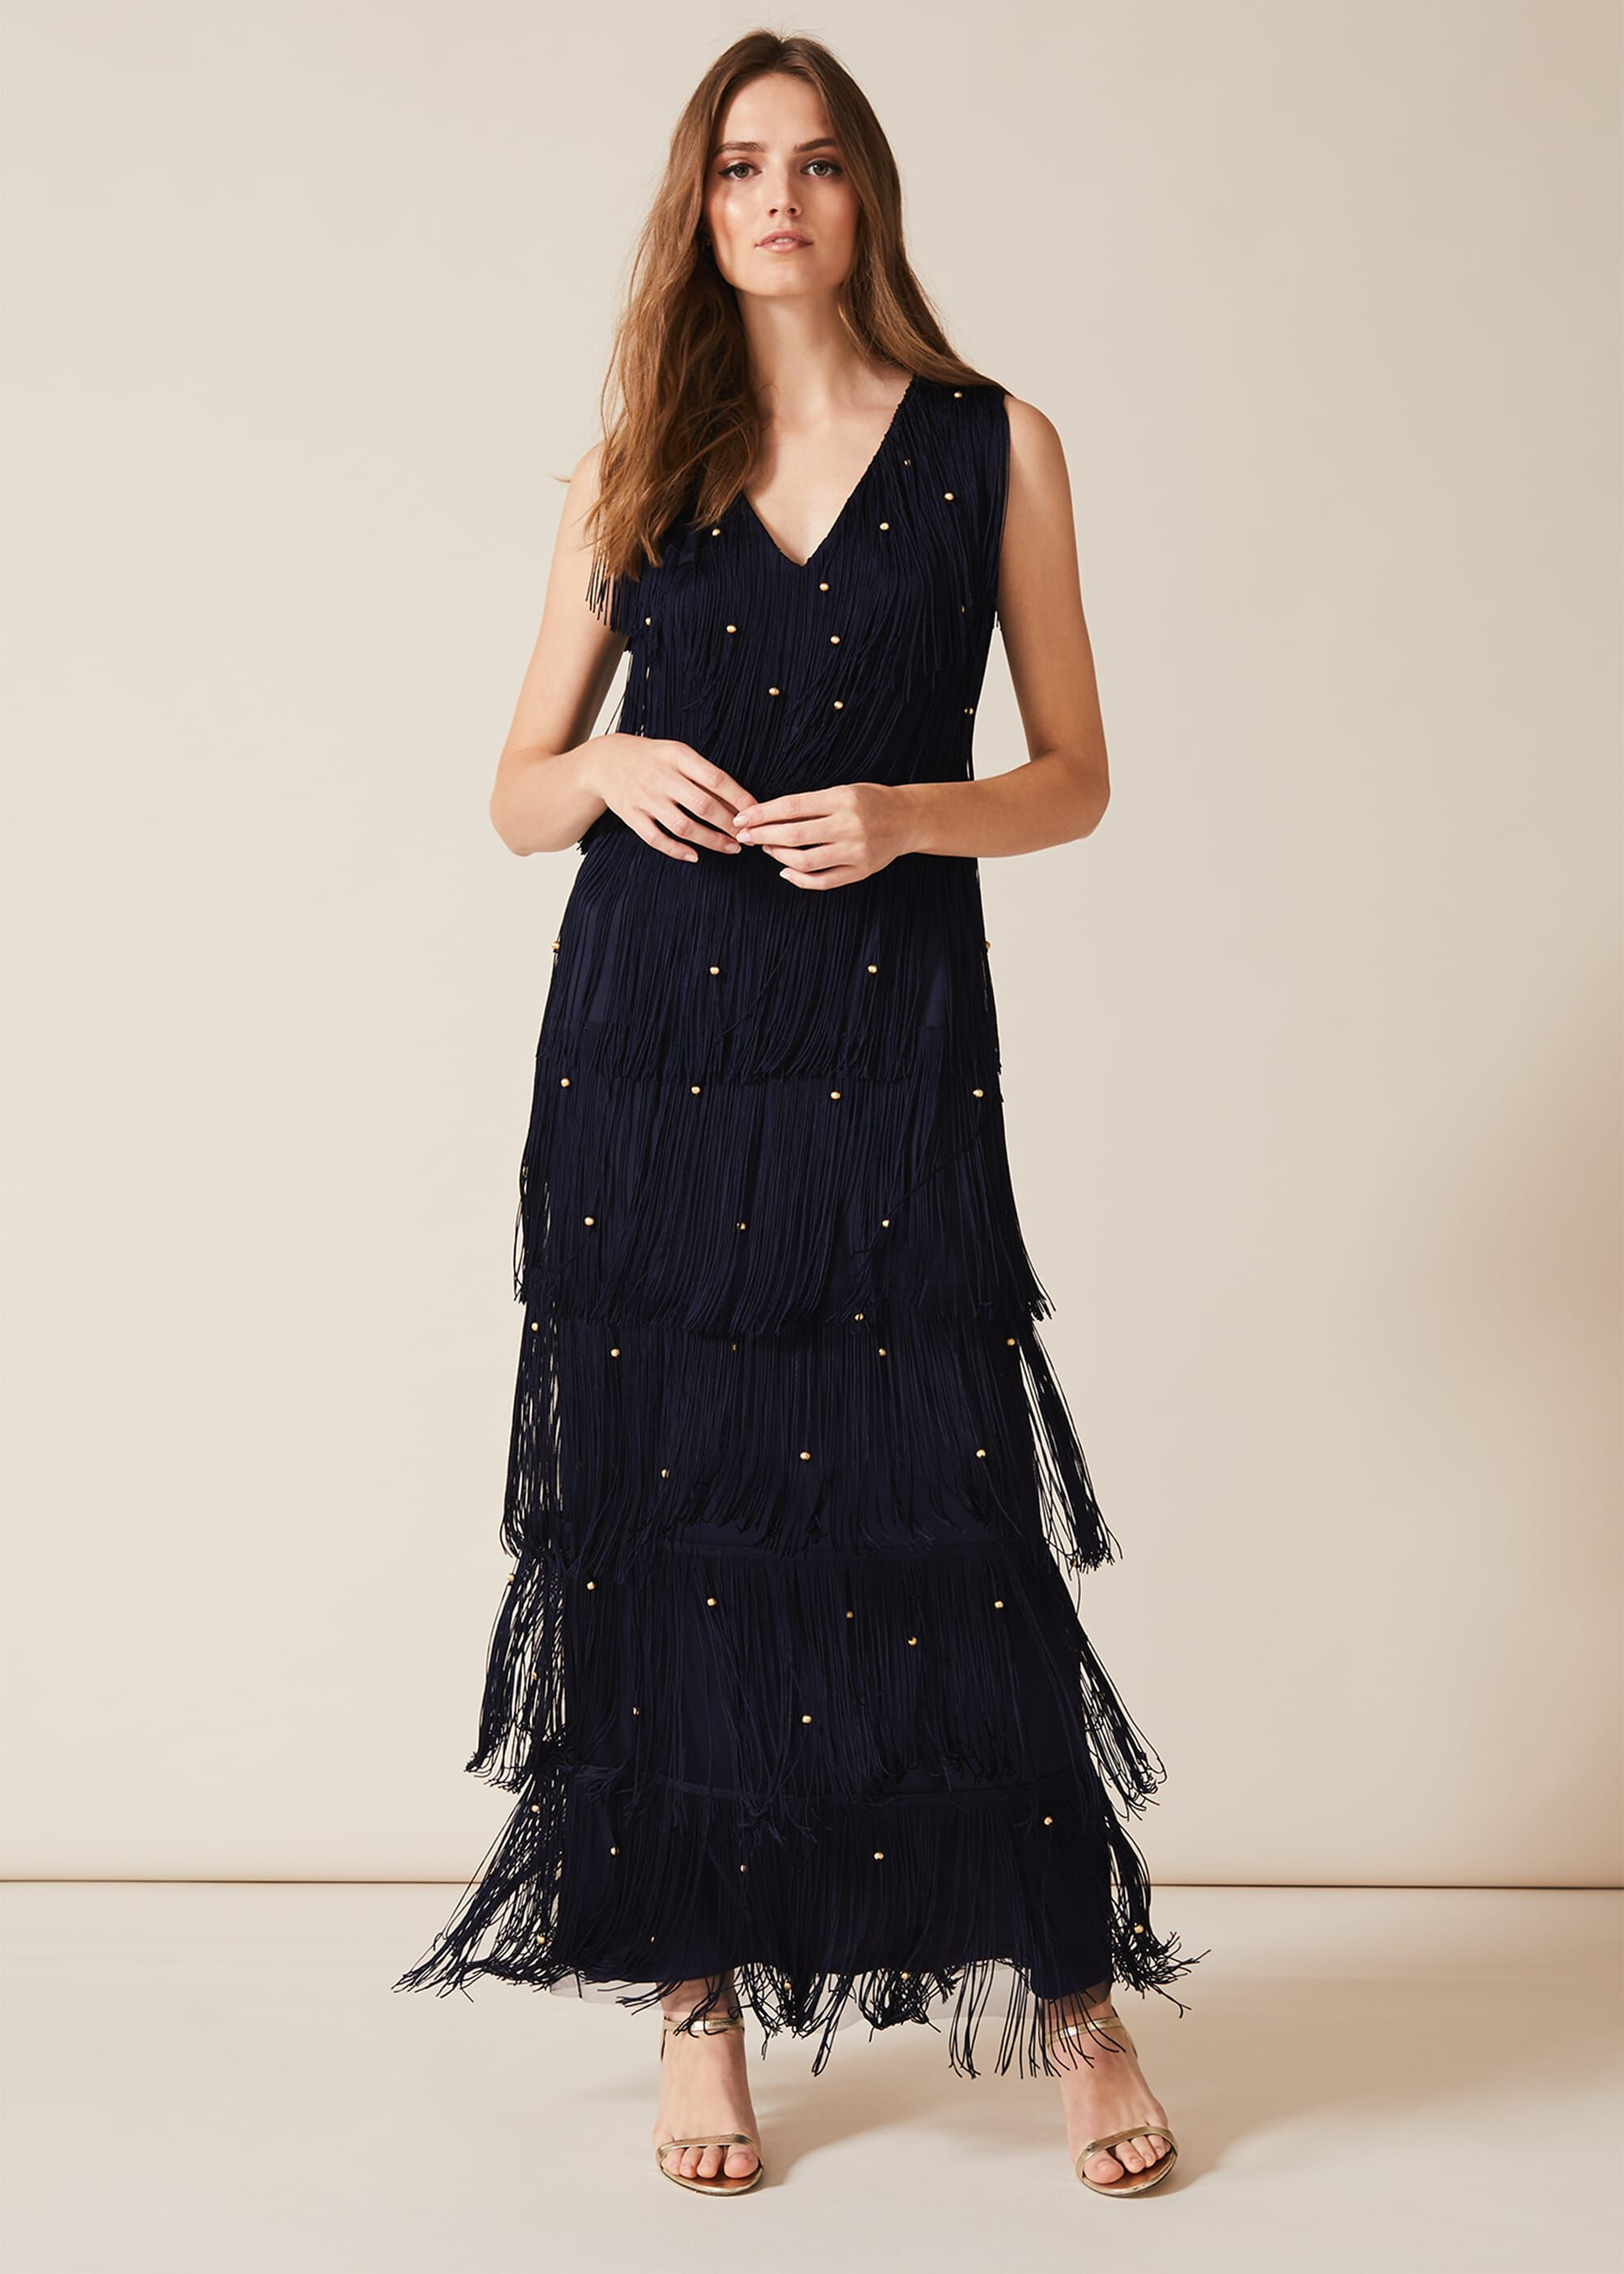 Best 1920s Prom Dresses – Great Gatsby Style Gowns Phase Eight Kandice Fringe Maxi Dress Blue Maxi Occasion Dress £134.25 AT vintagedancer.com